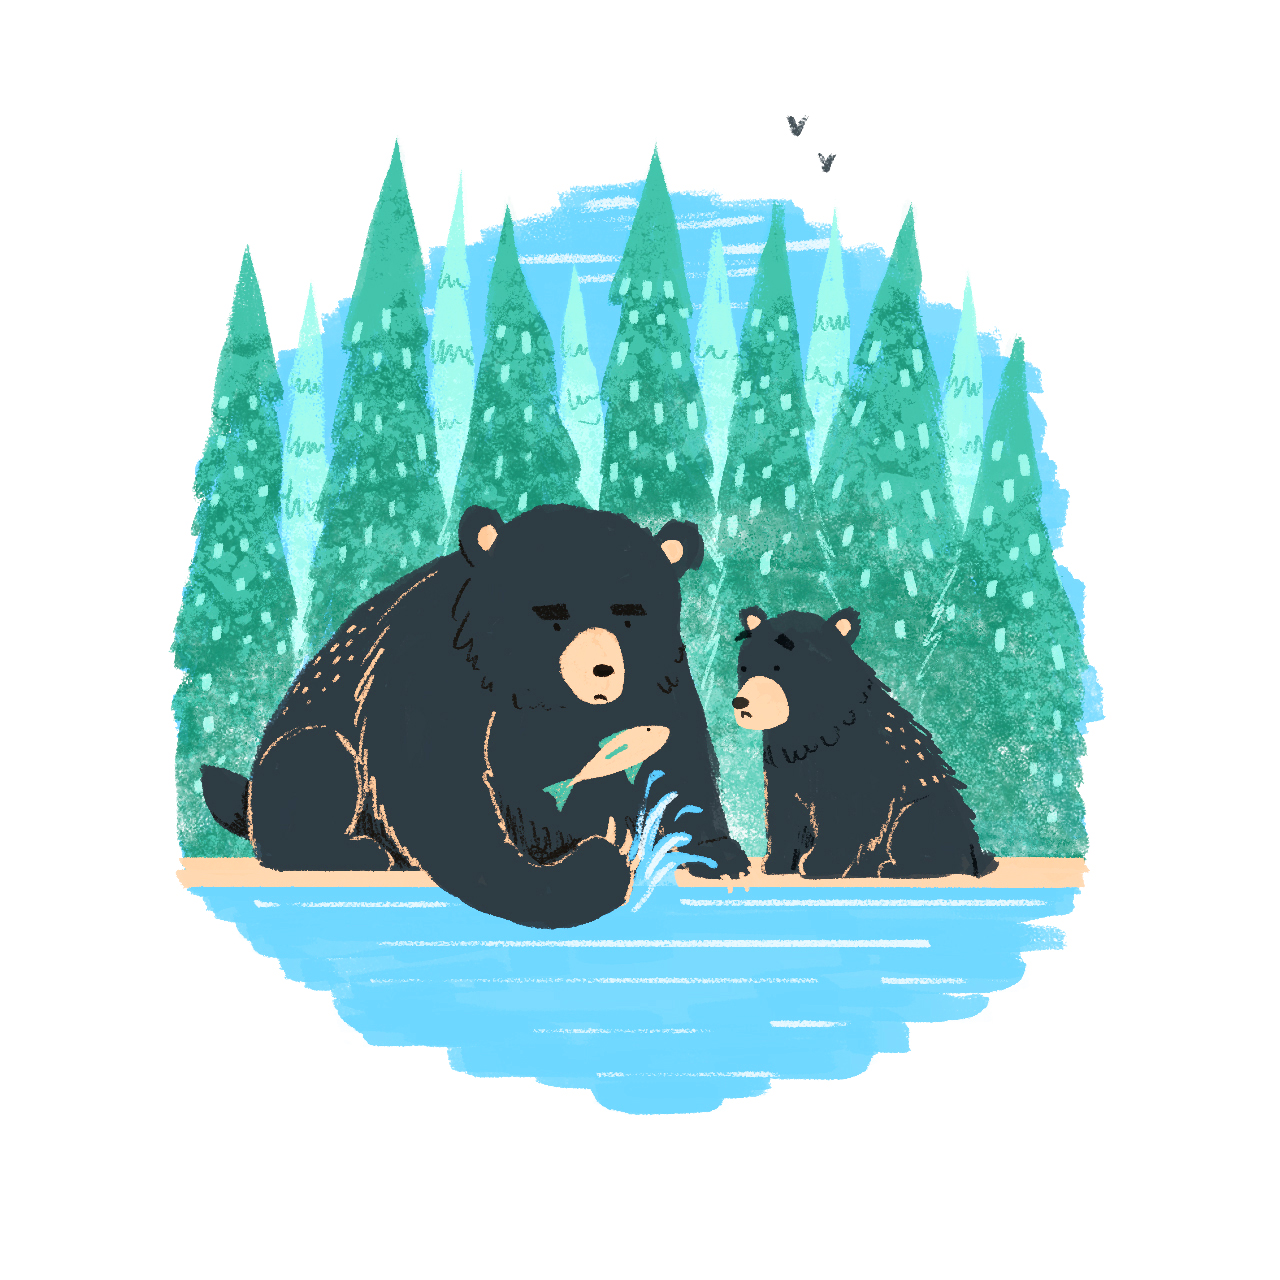 'Bears' © Jonty Howley Illustration